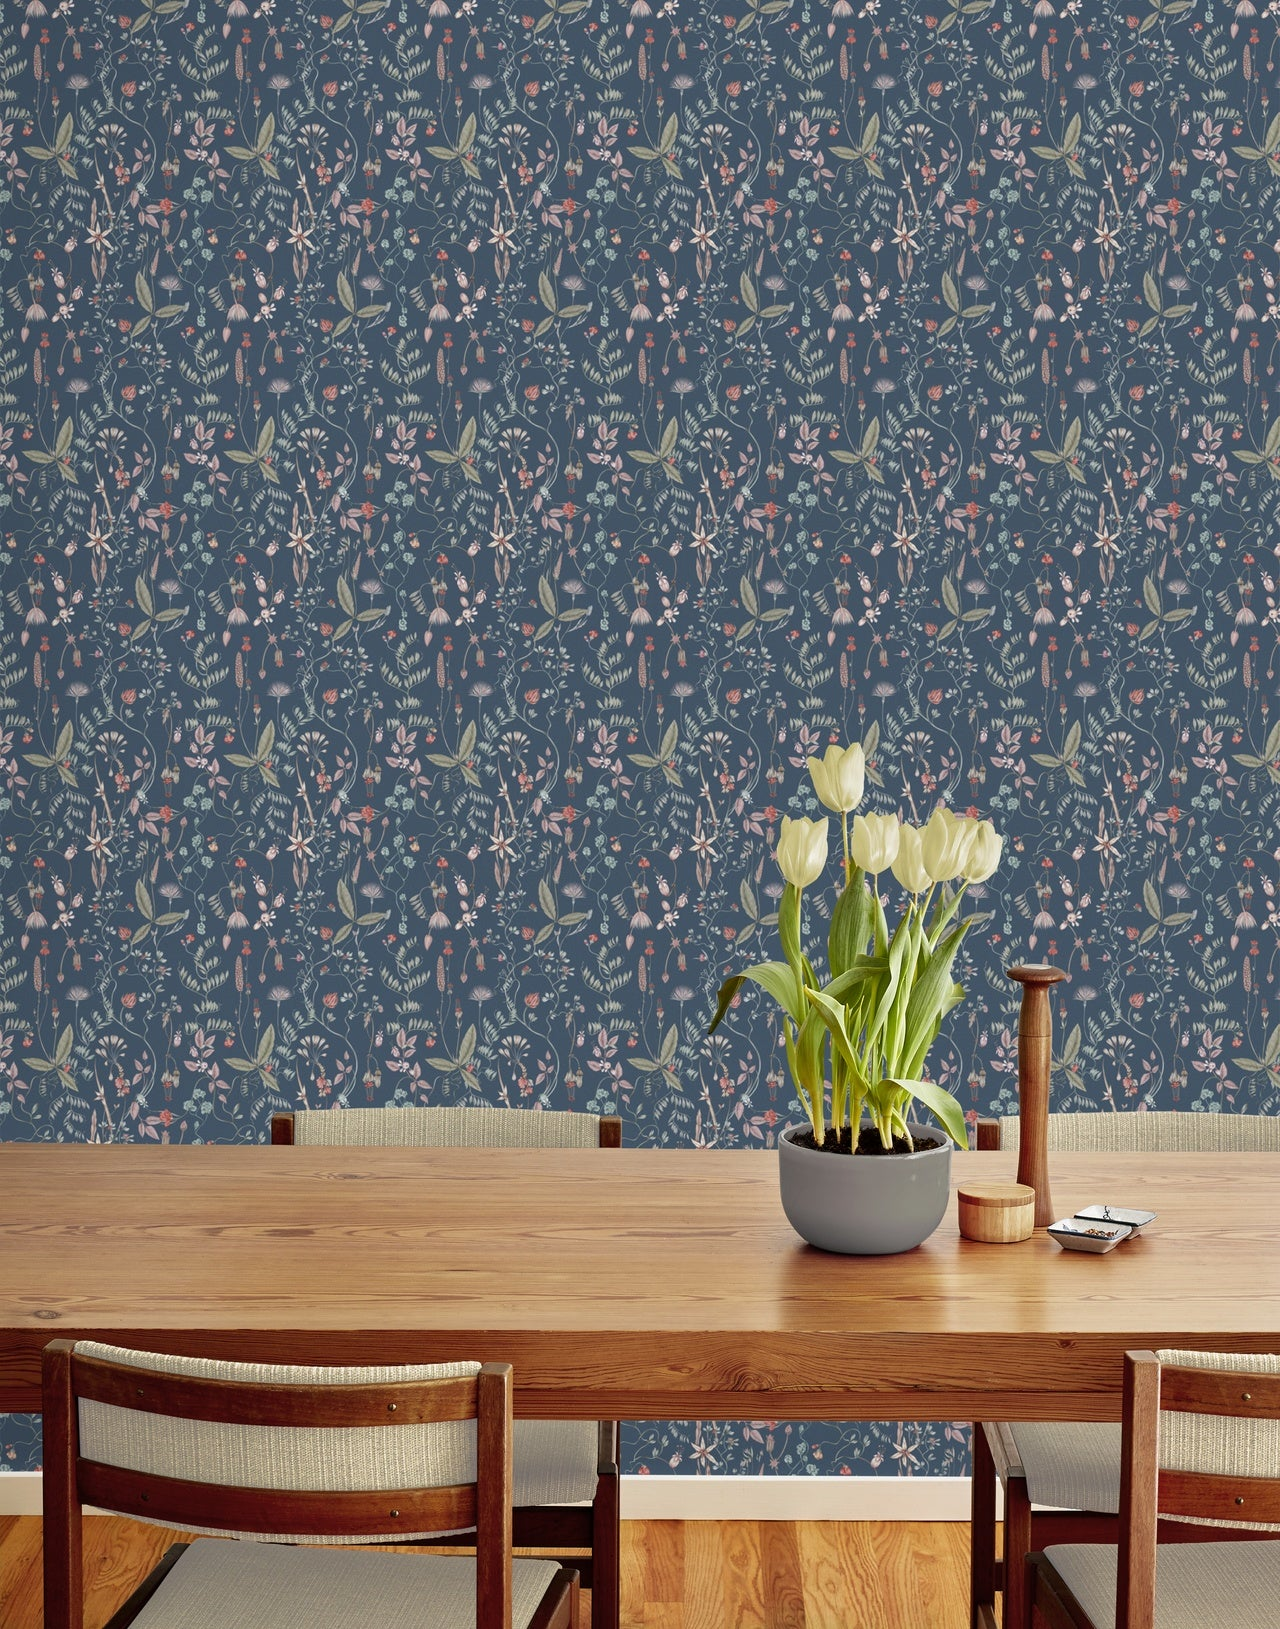 Sonoma Indigo wallpaper | Lisel Jane Ashlock collection | modern floral wallpapers and murals | Hygge & West